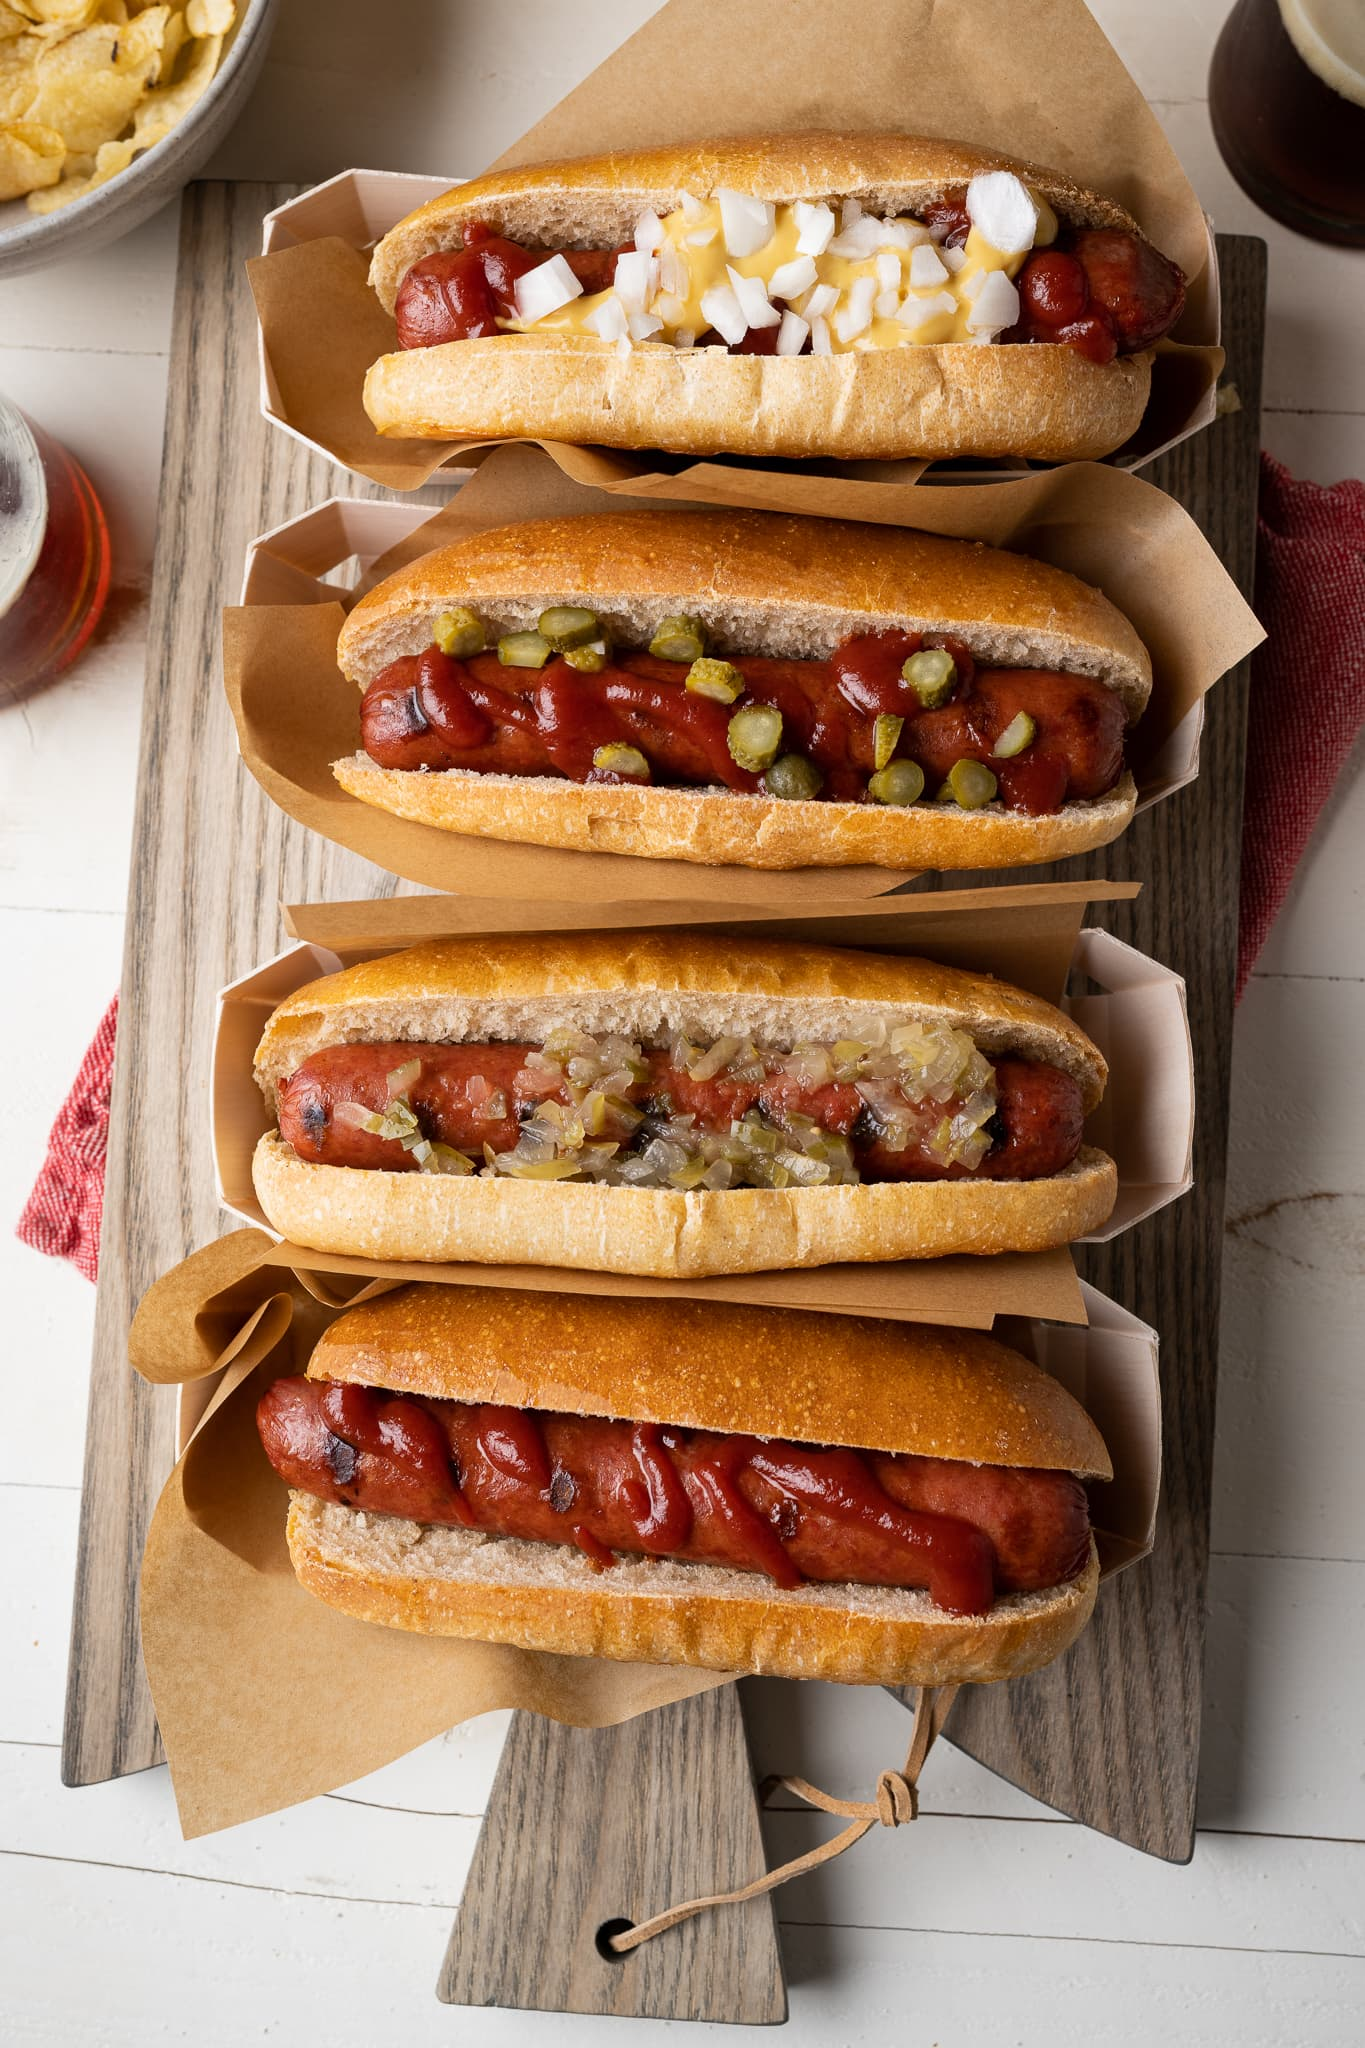 Homemade hot dog buns filled with hot dogs